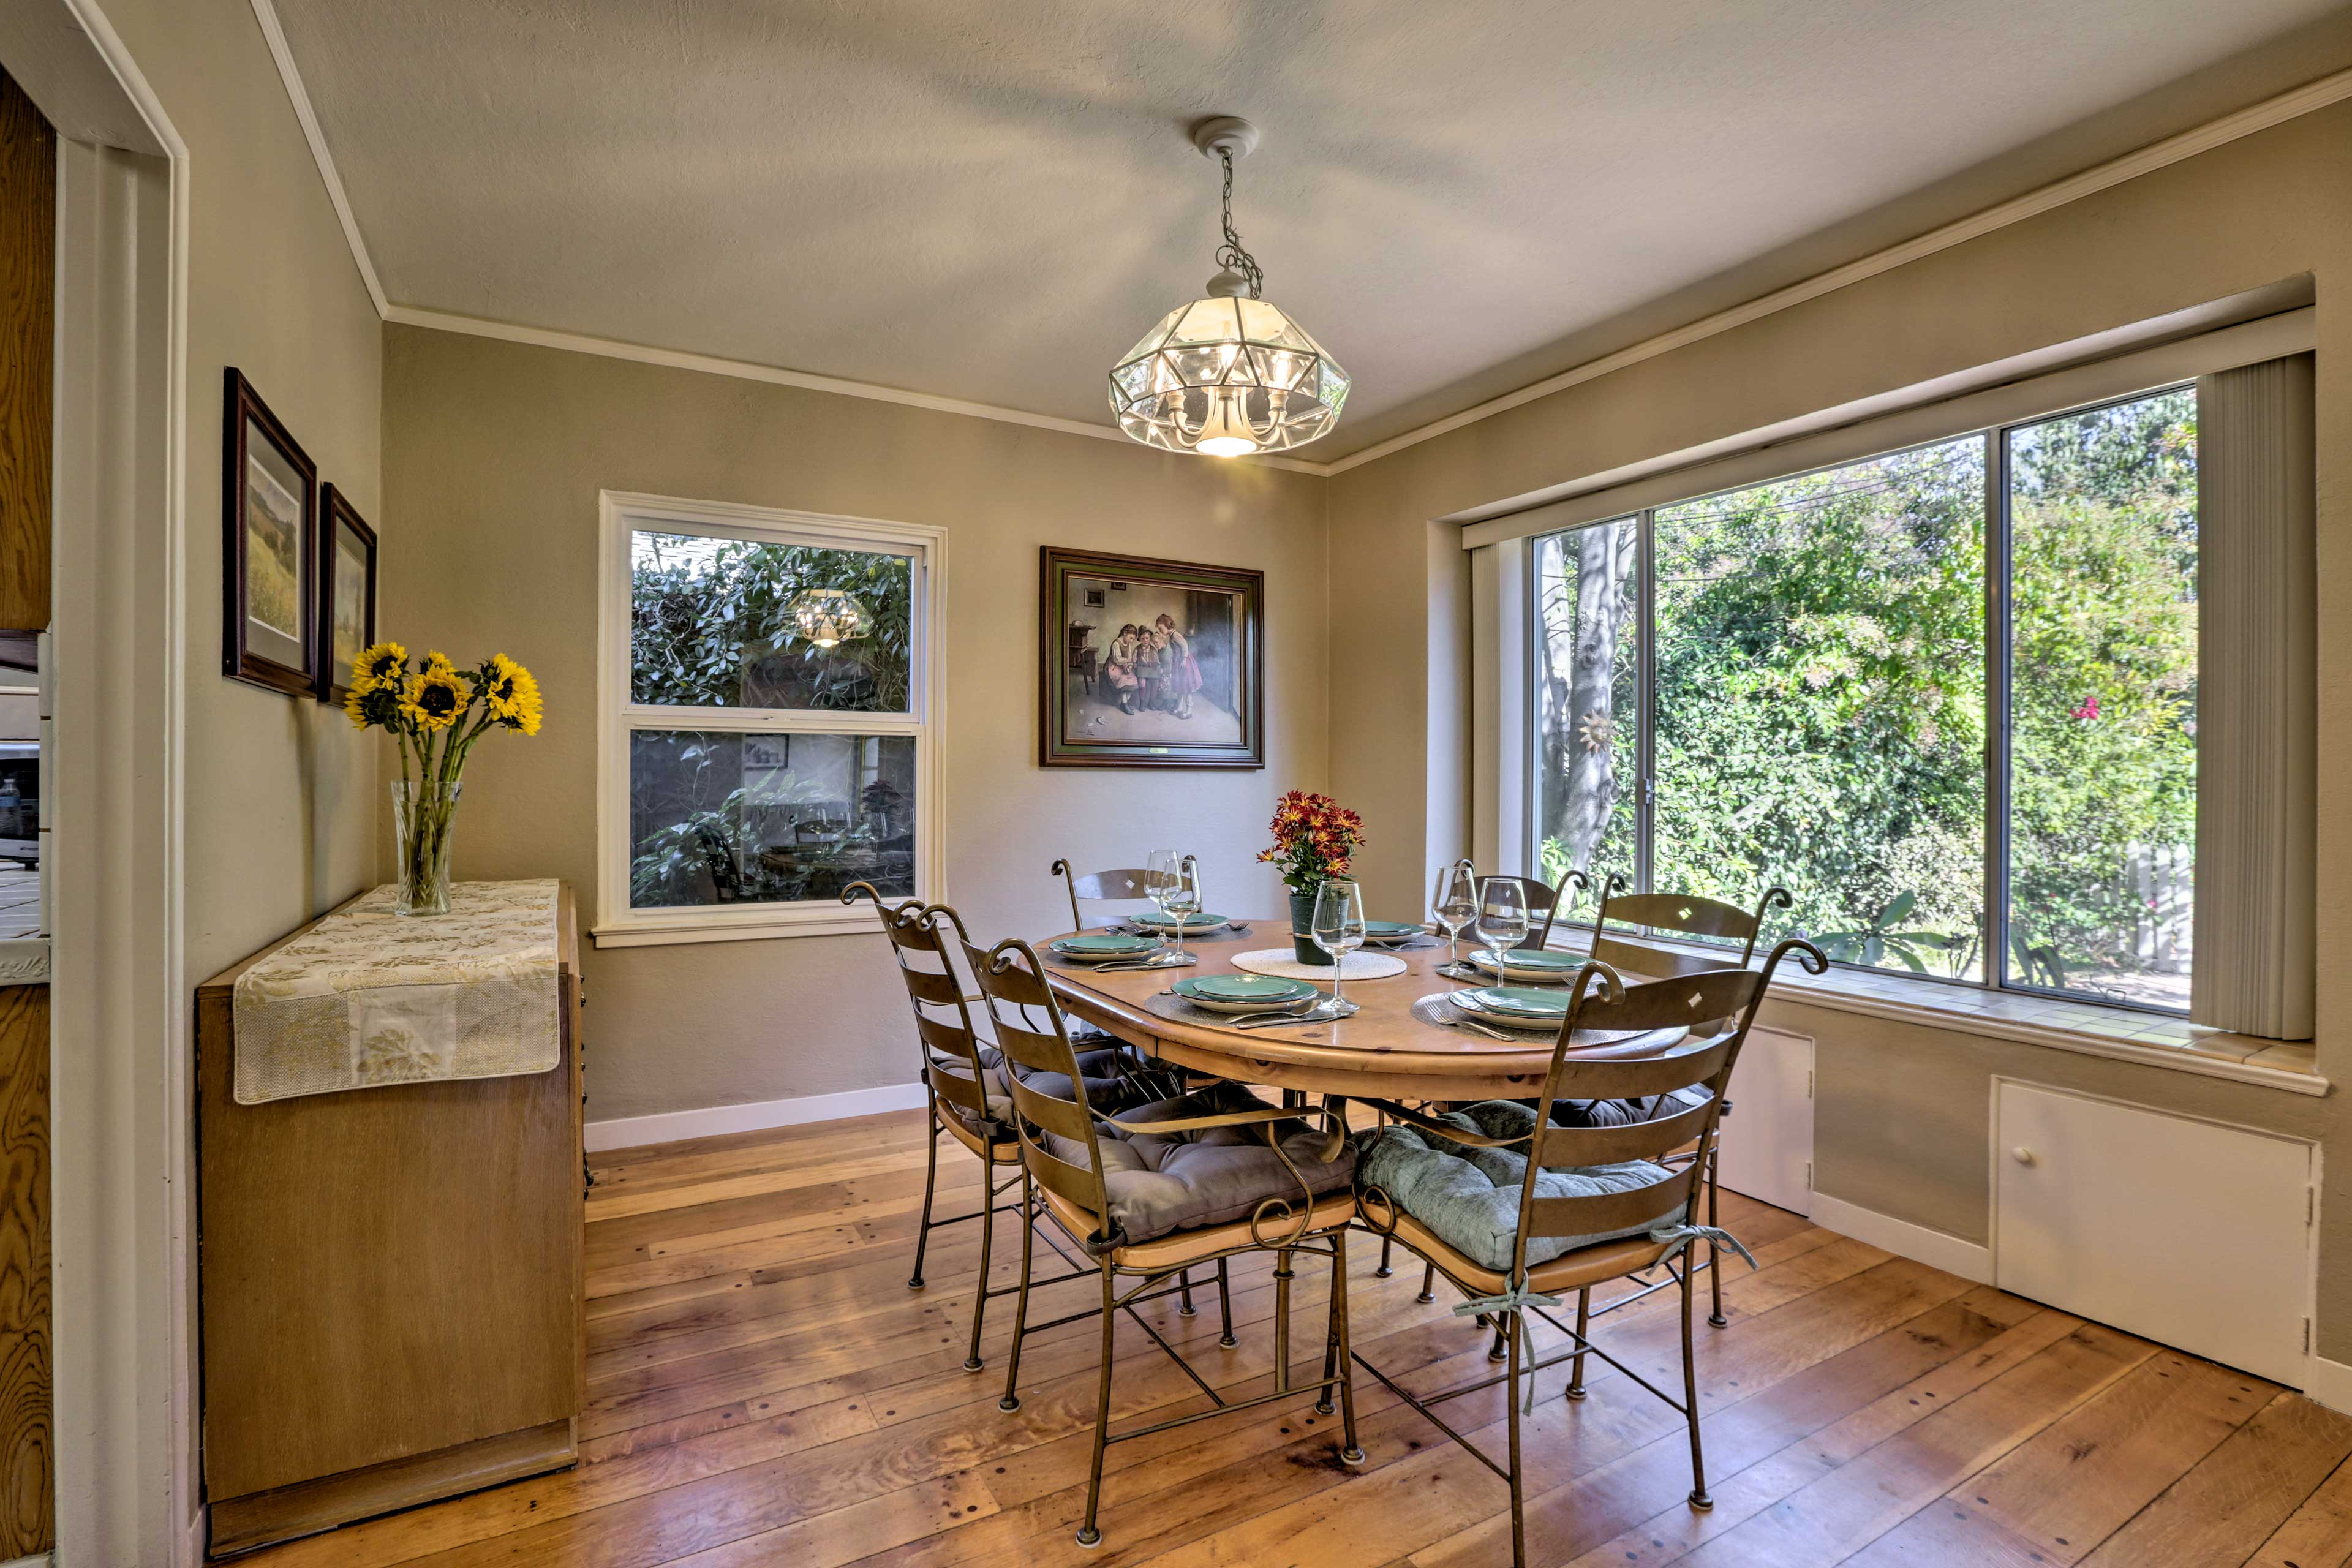 This comfortable home is just a quick 40-mile trip from the heart of San Fran!